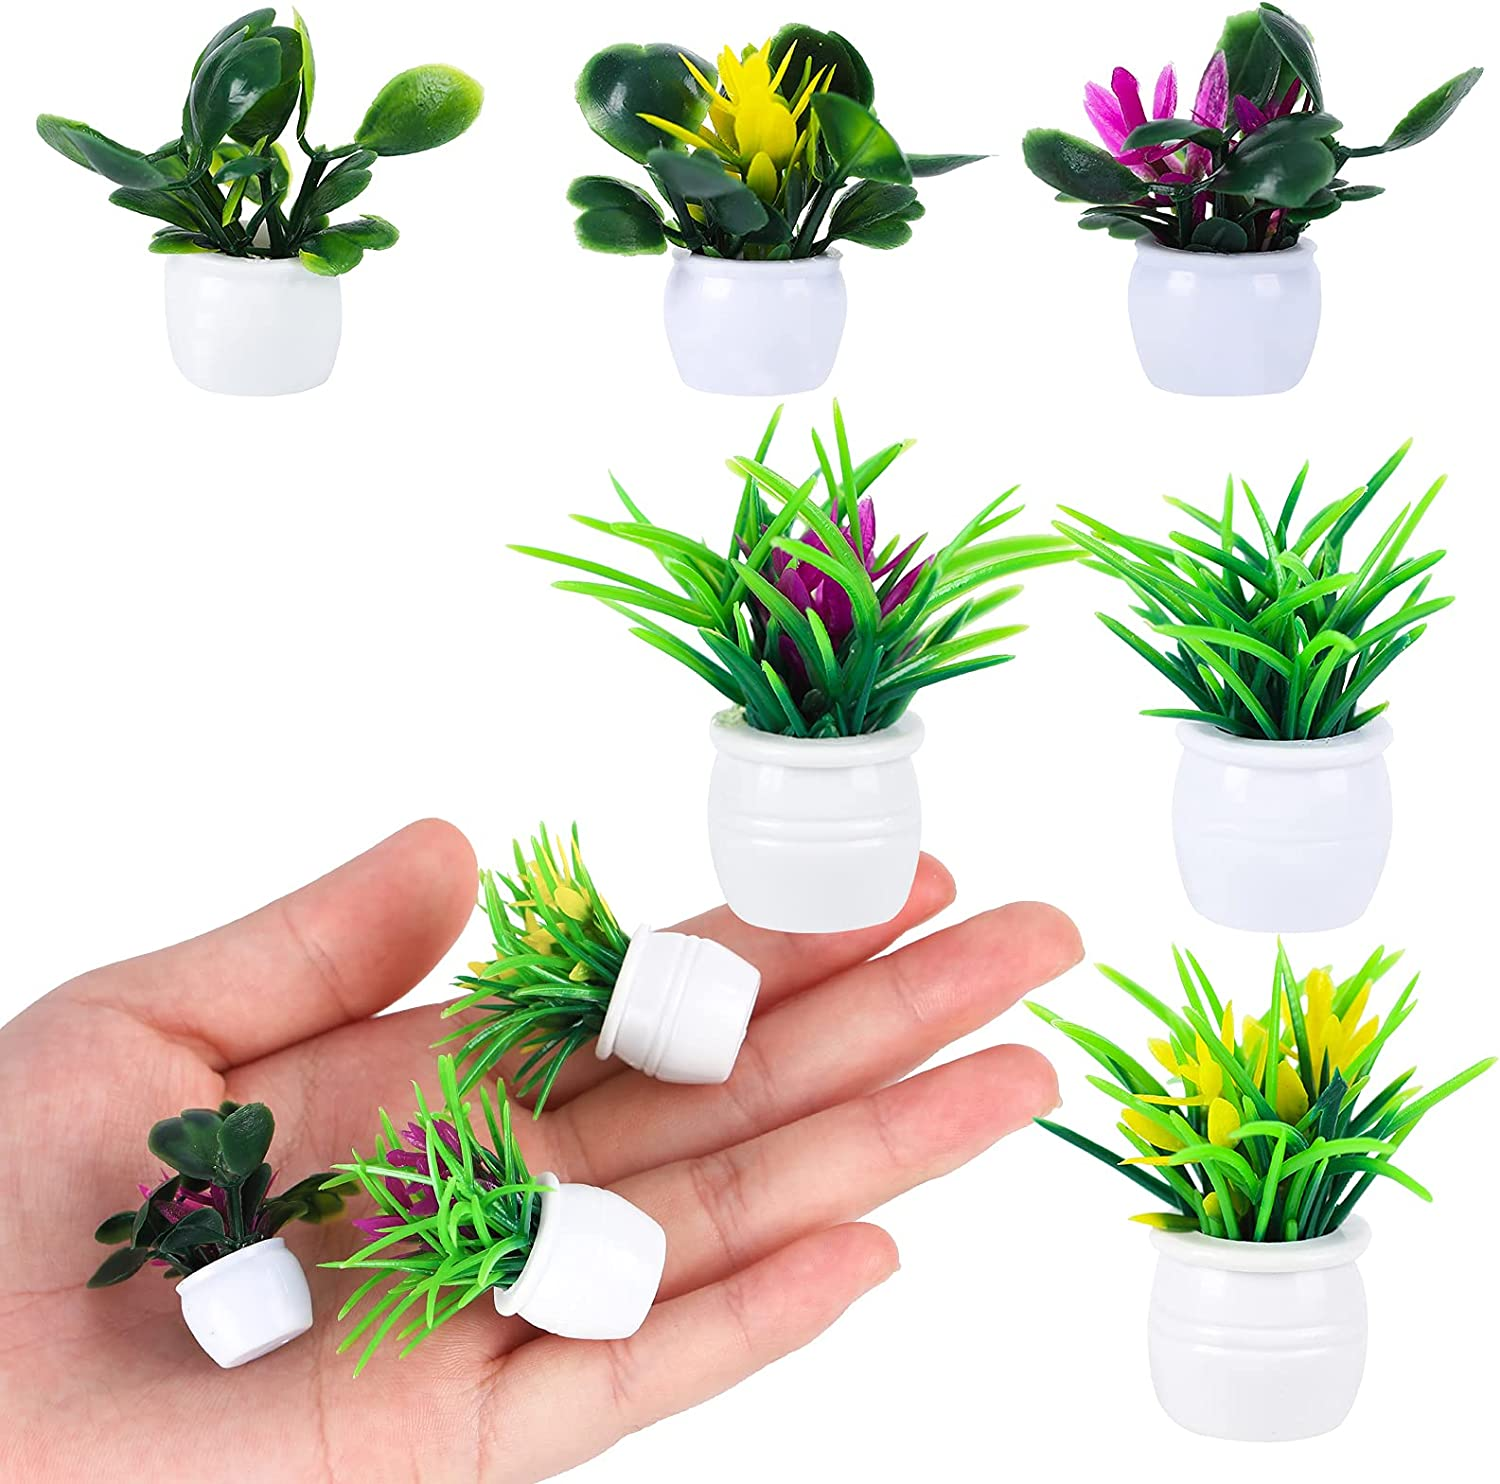 Gukasxi 18 Pieces Dollhouse Plant Miniature Bonsai Plant Mini Potted Plant Flower Model Tiny Fake Greenery Ornament Dollhouse Furniture for Toddlers Girls and Boys, 6 Styles